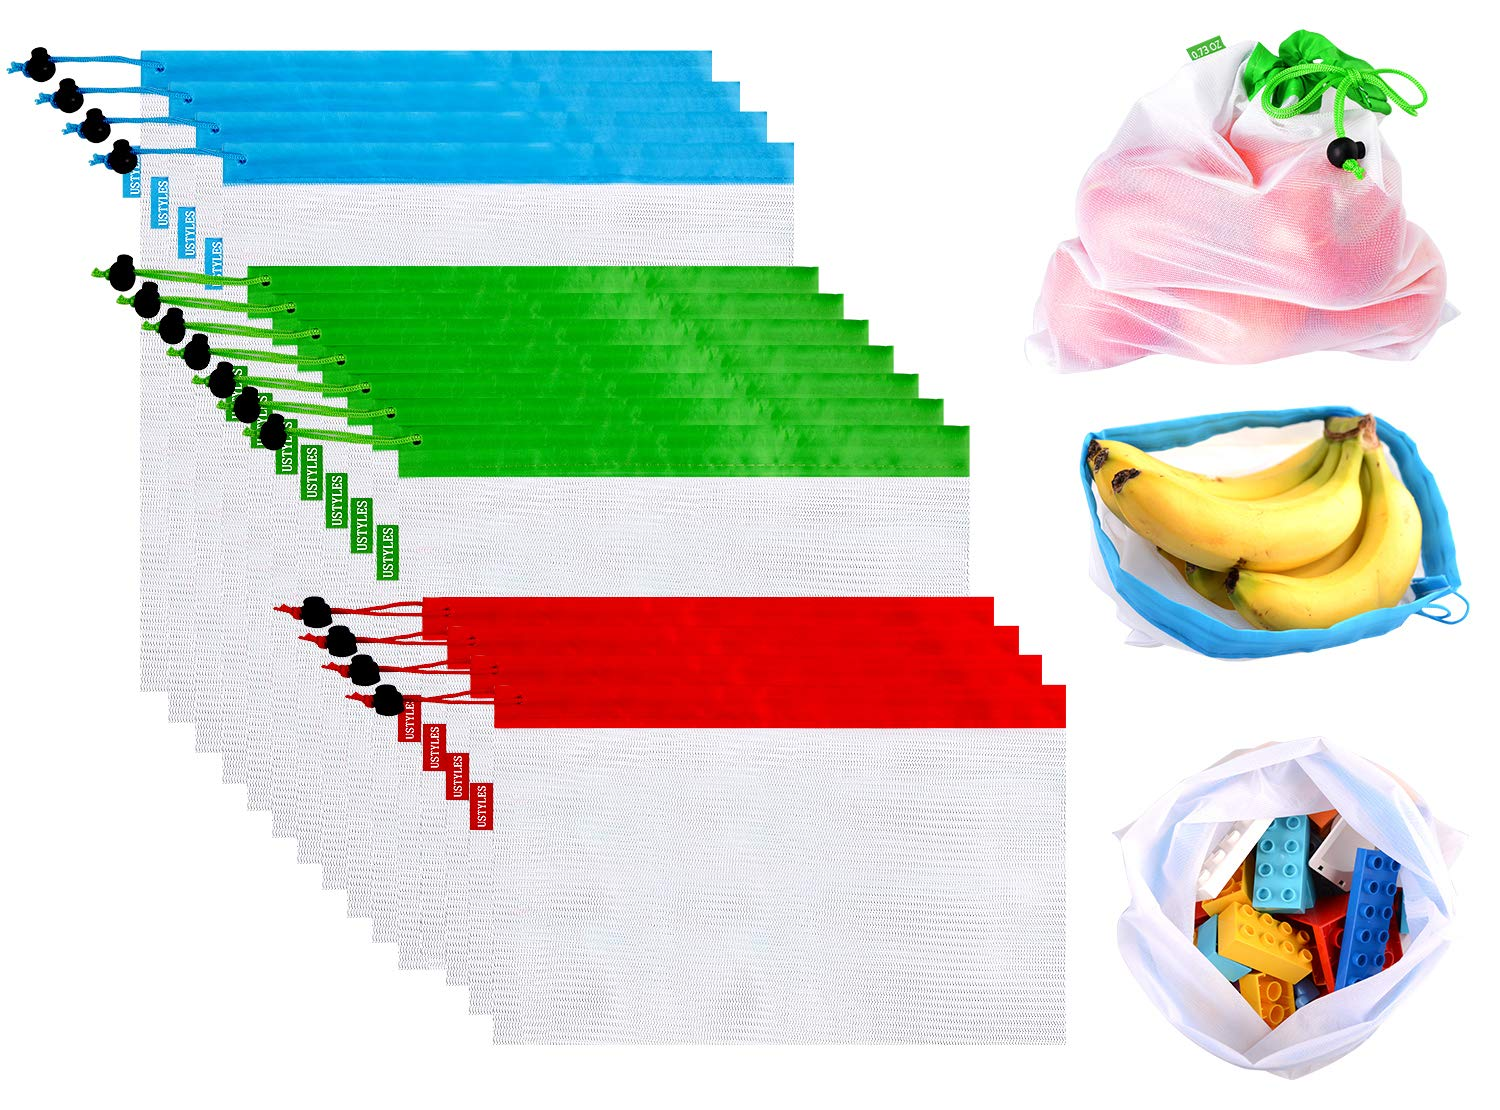 Upgrade Reusable Produce Bags 15Pcs, Zero Waste Reusable Produce Bags Double-Stitched Washable Lightweight See Through with Tare Weight Labels Eco Friendly Produce Bags for Fruit Veggies Toy